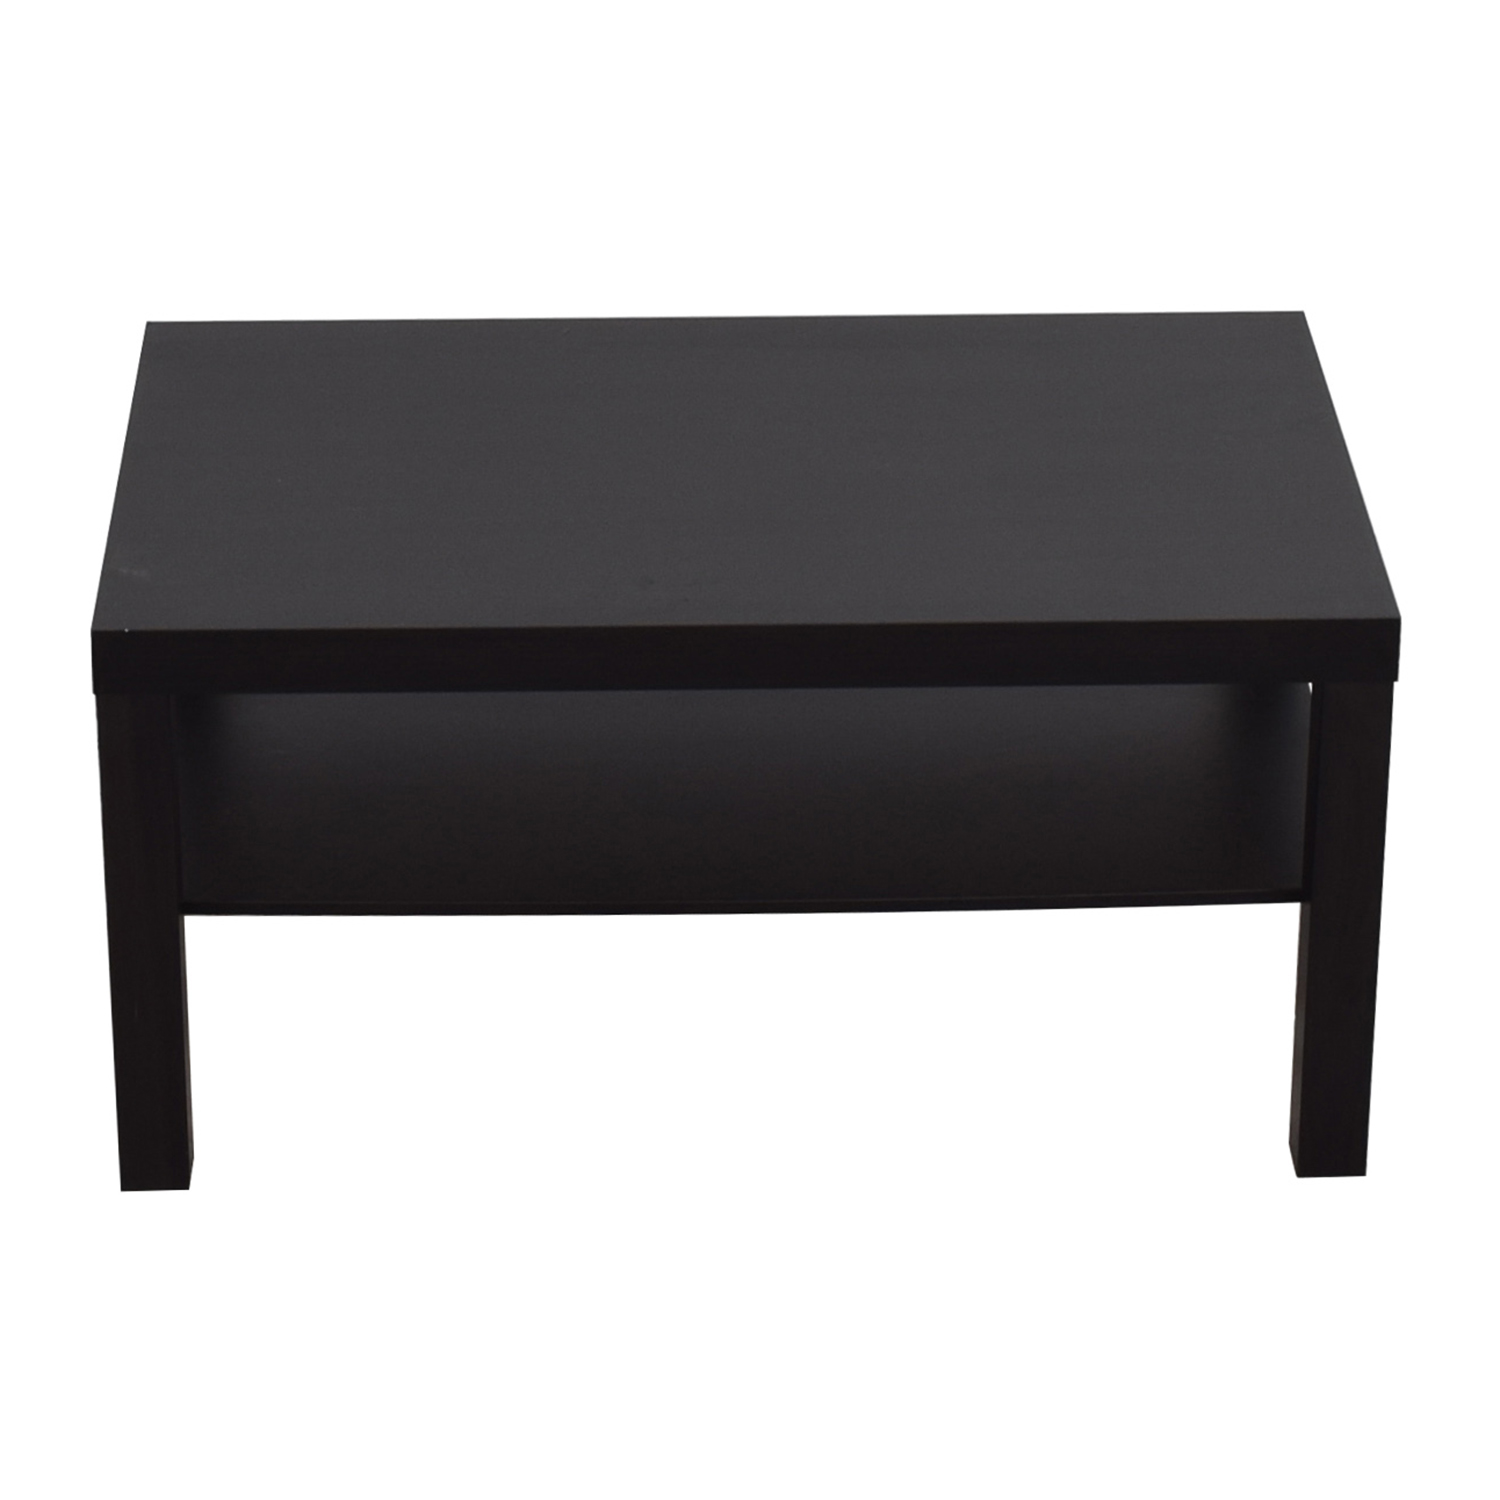 IKEA IKEA Black Coffee Table nj